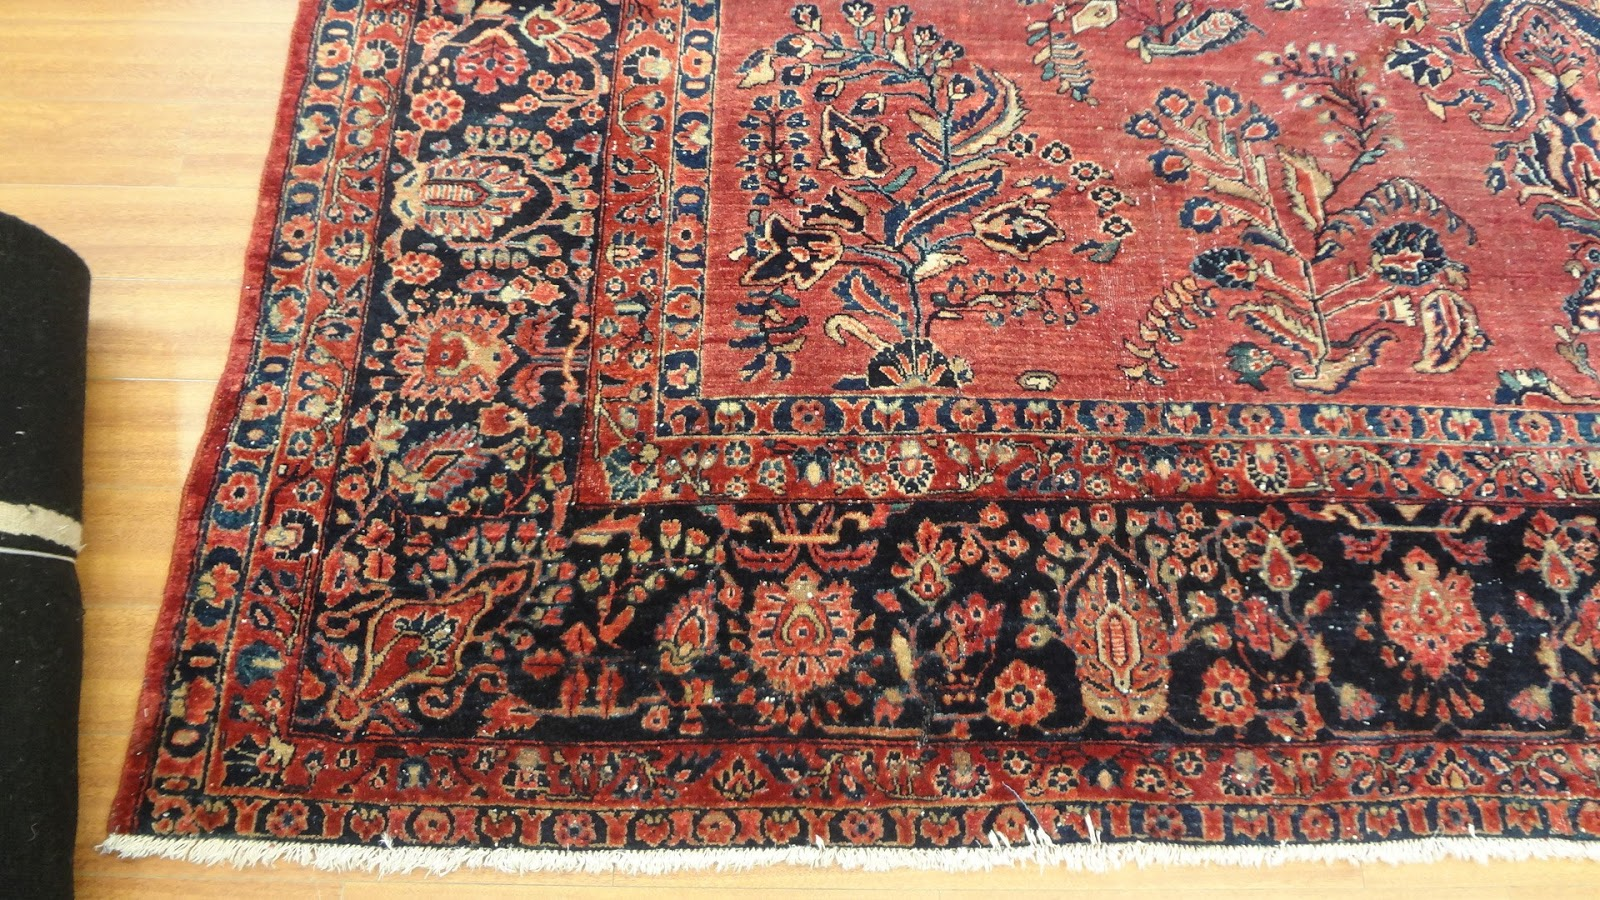 The American Sarouk Is Perhaps One Of More Por Designs 20th Century Was A Genre Rug Which Woven In